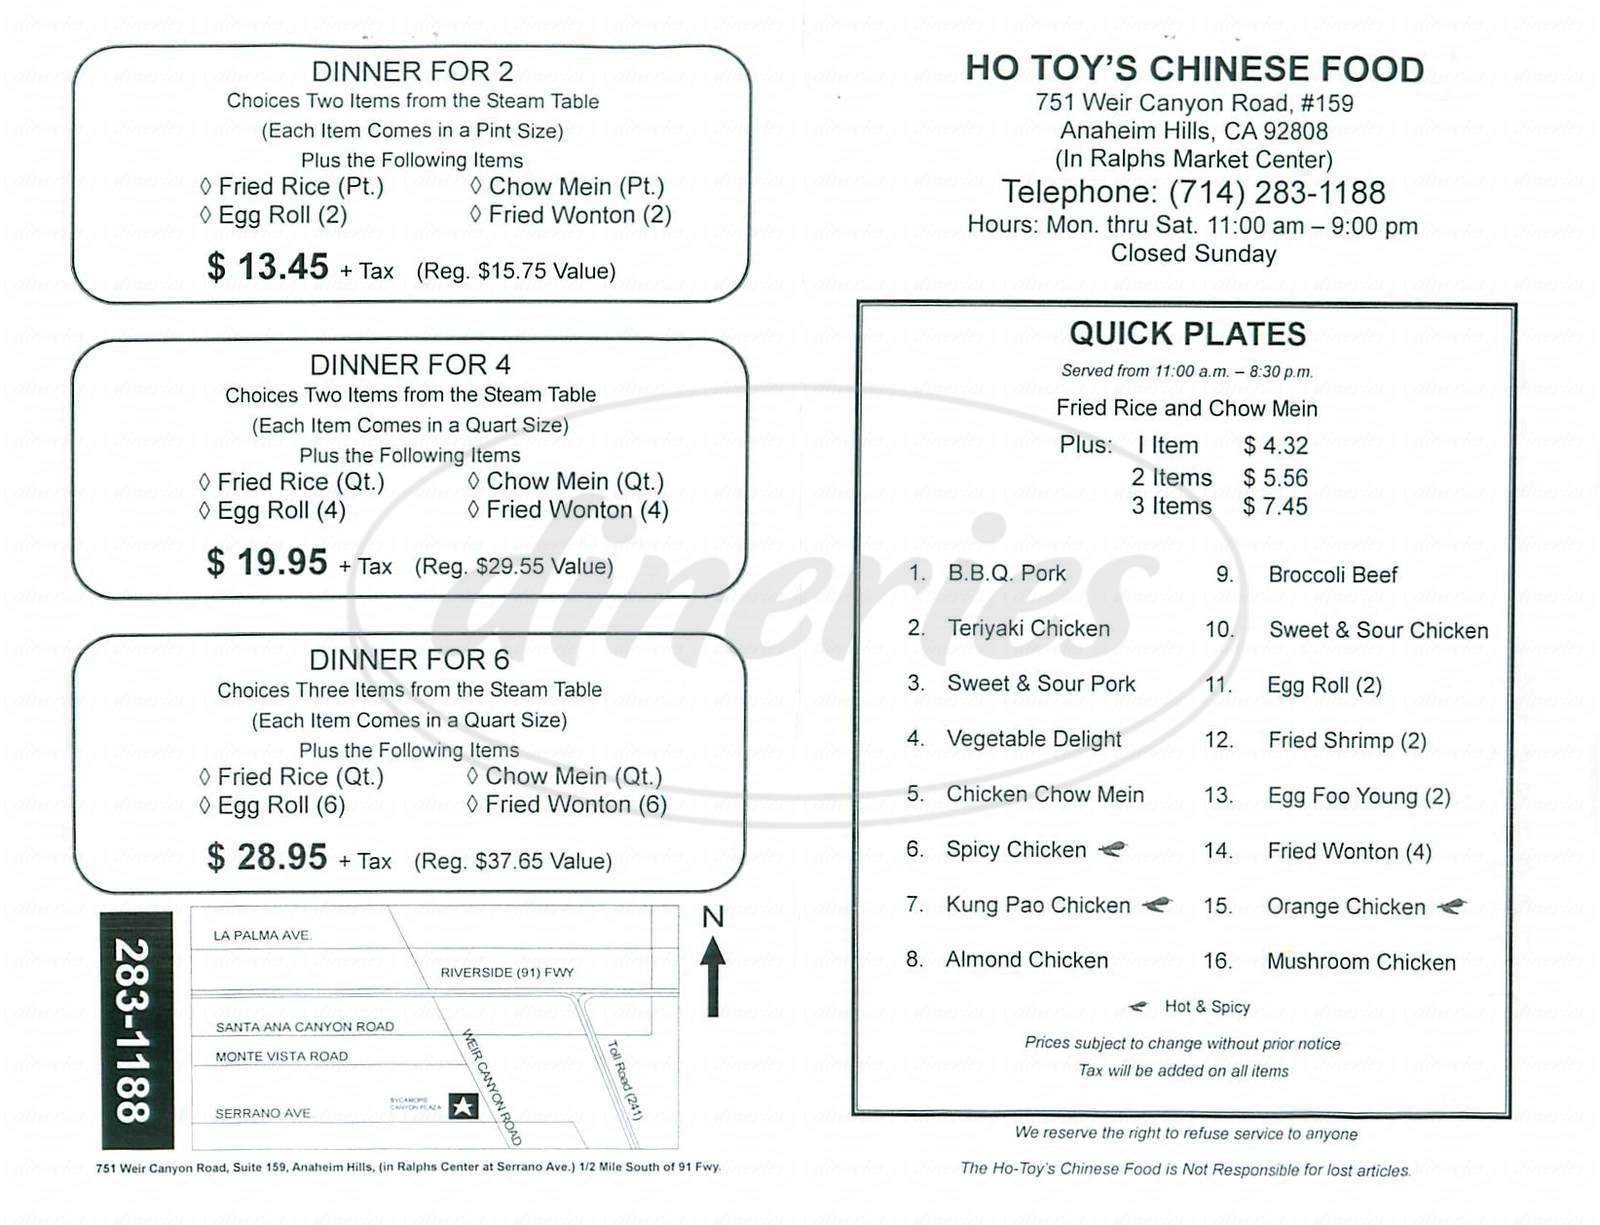 menu for Ho Toy's Chinese Food